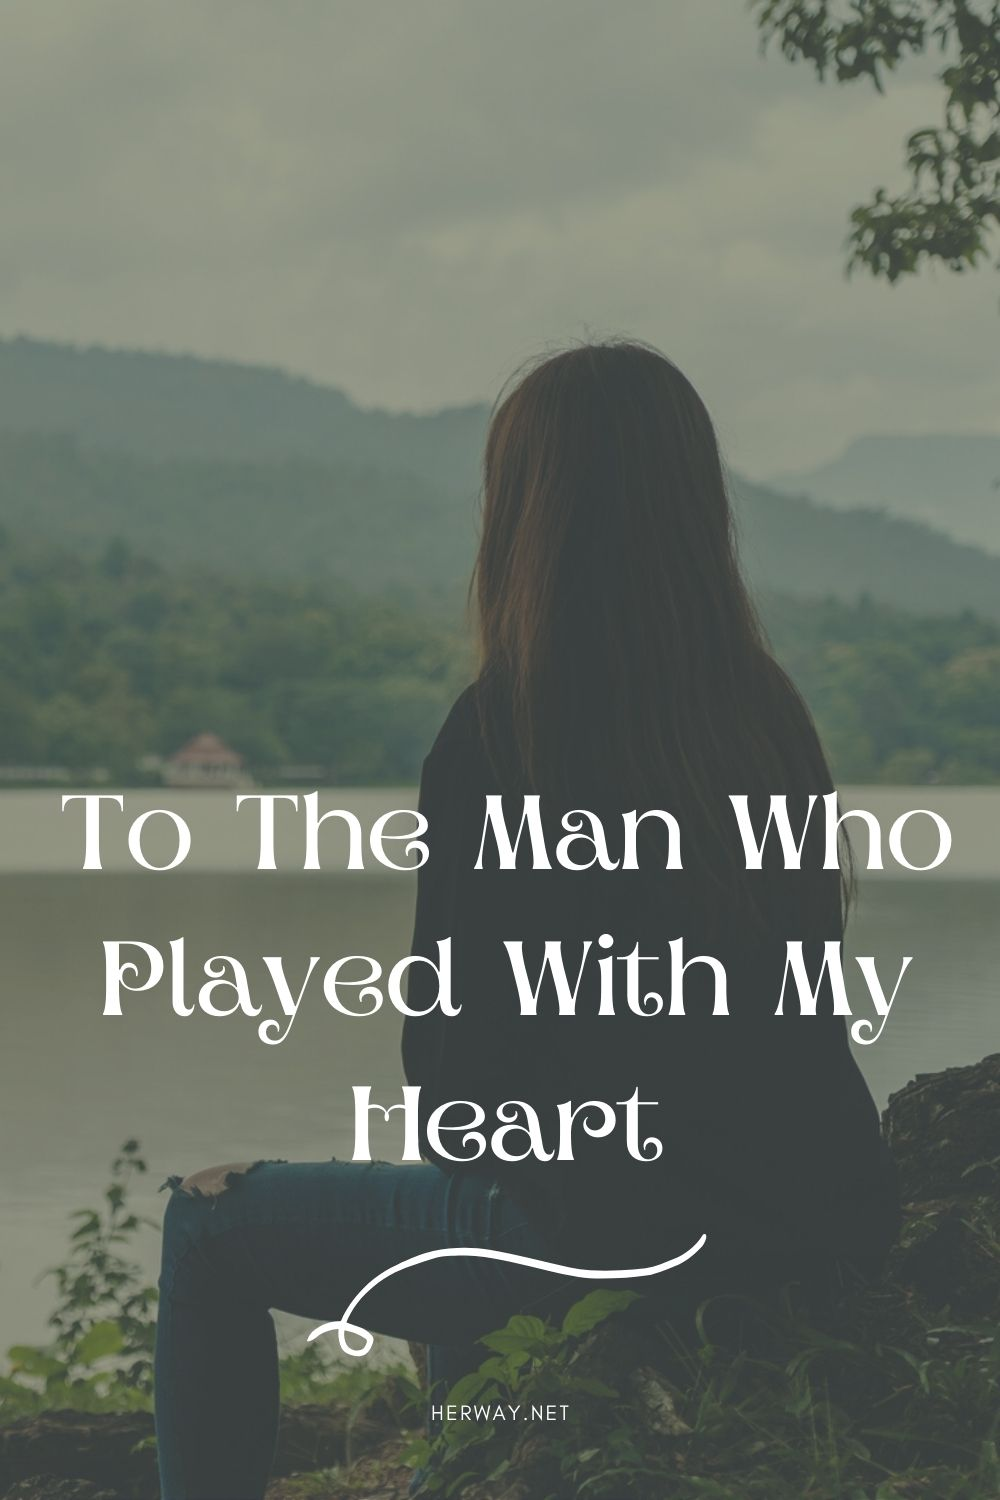 To The Man Who Played With My Heart